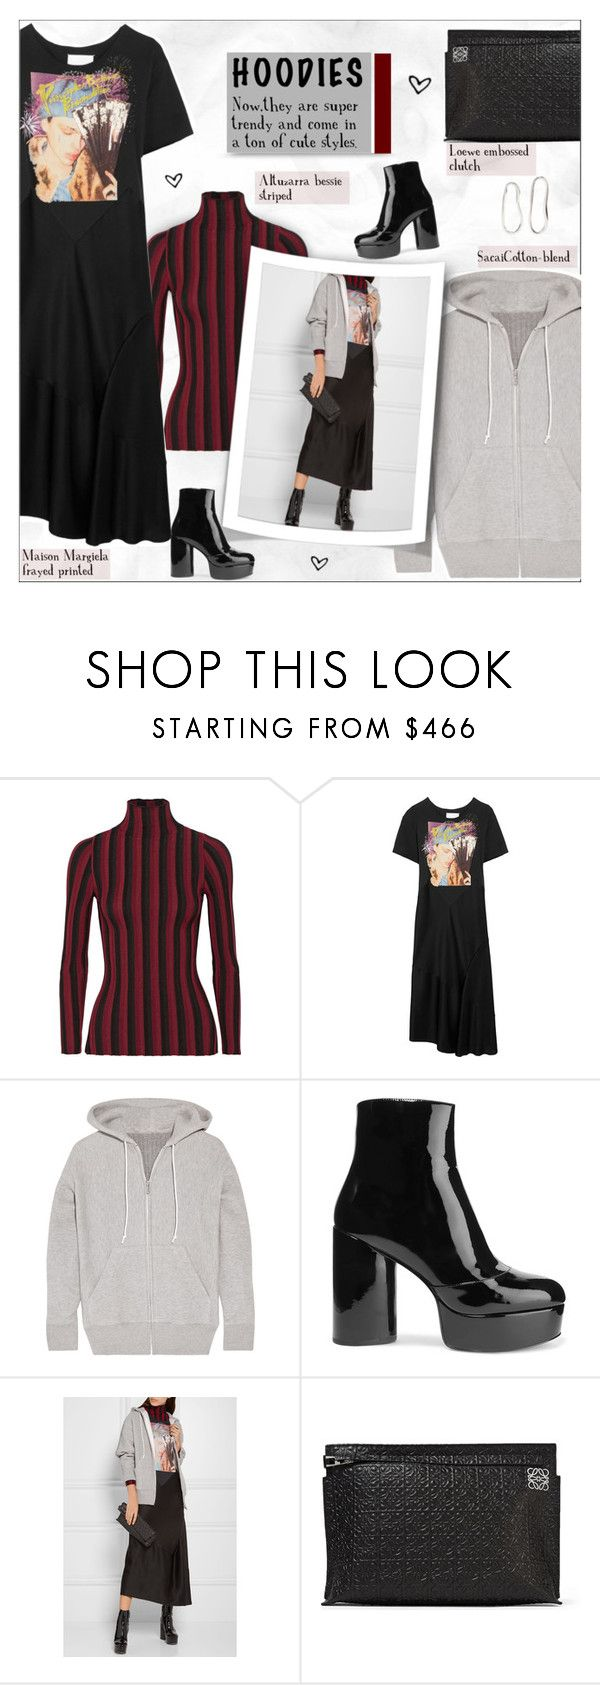 """""""Heads Up! Cute Hoodies!"""" by alves-nogueira ❤ liked on Polyvore featuring Altuzarra, Maison Margiela, Sacai, Marc Jacobs, Loewe and Sophie Buhai"""